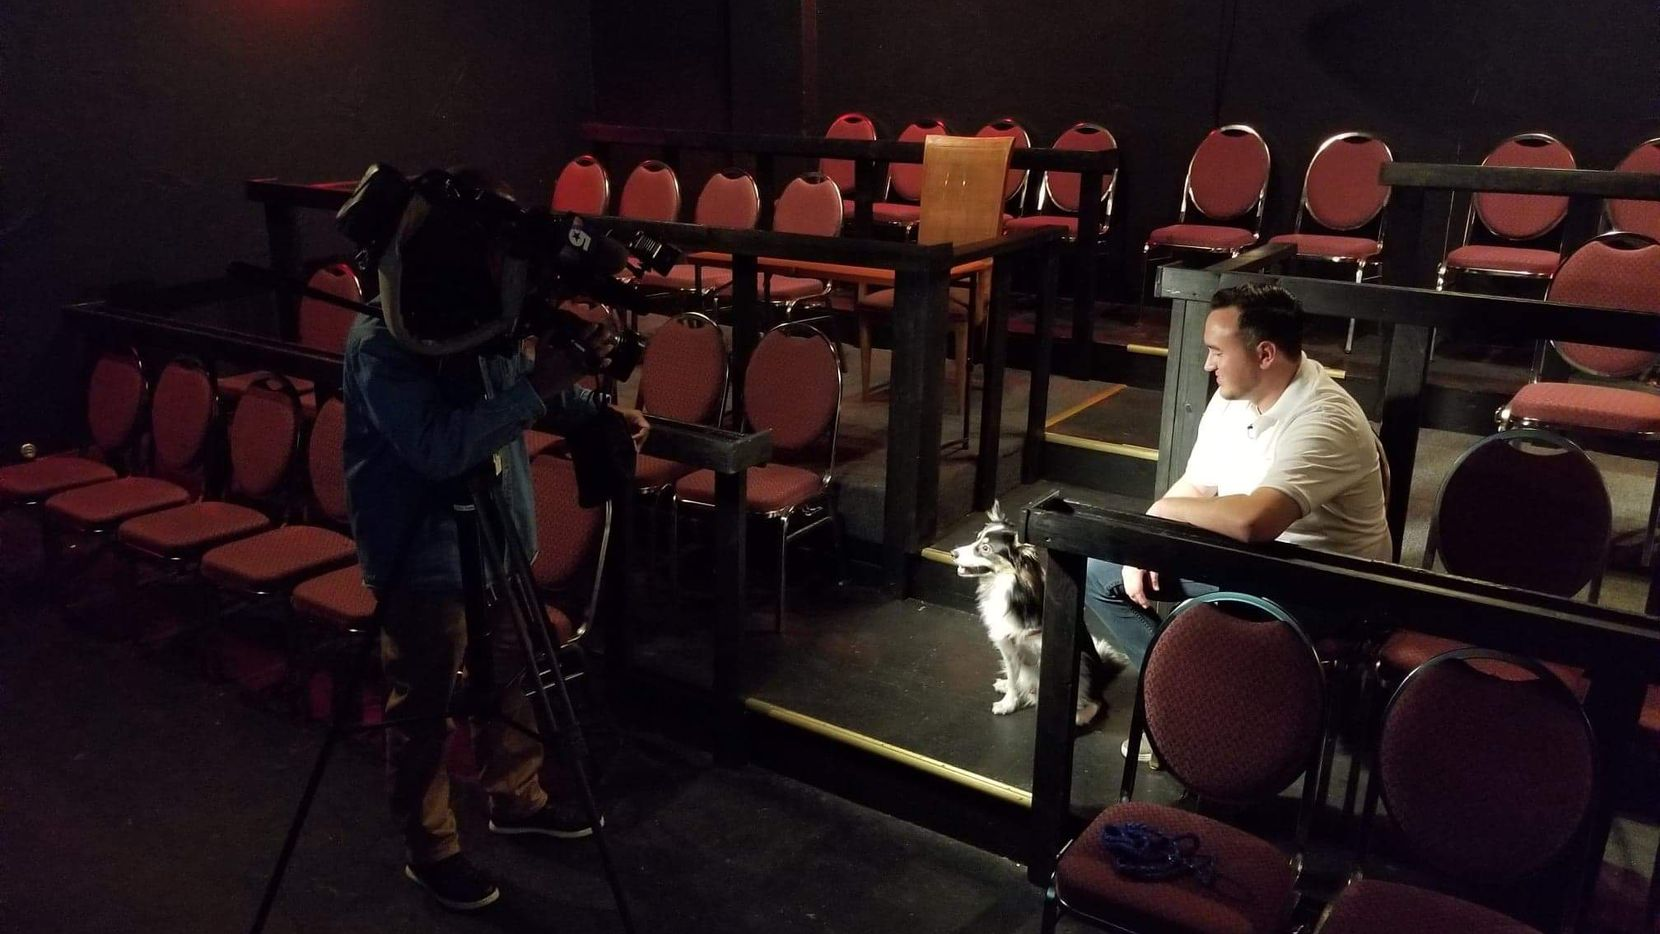 K9 Cinemas founder Eric Lankford and his dog, Bear, inside the dog-friendly movie theater. It was recently featured on NBC5.